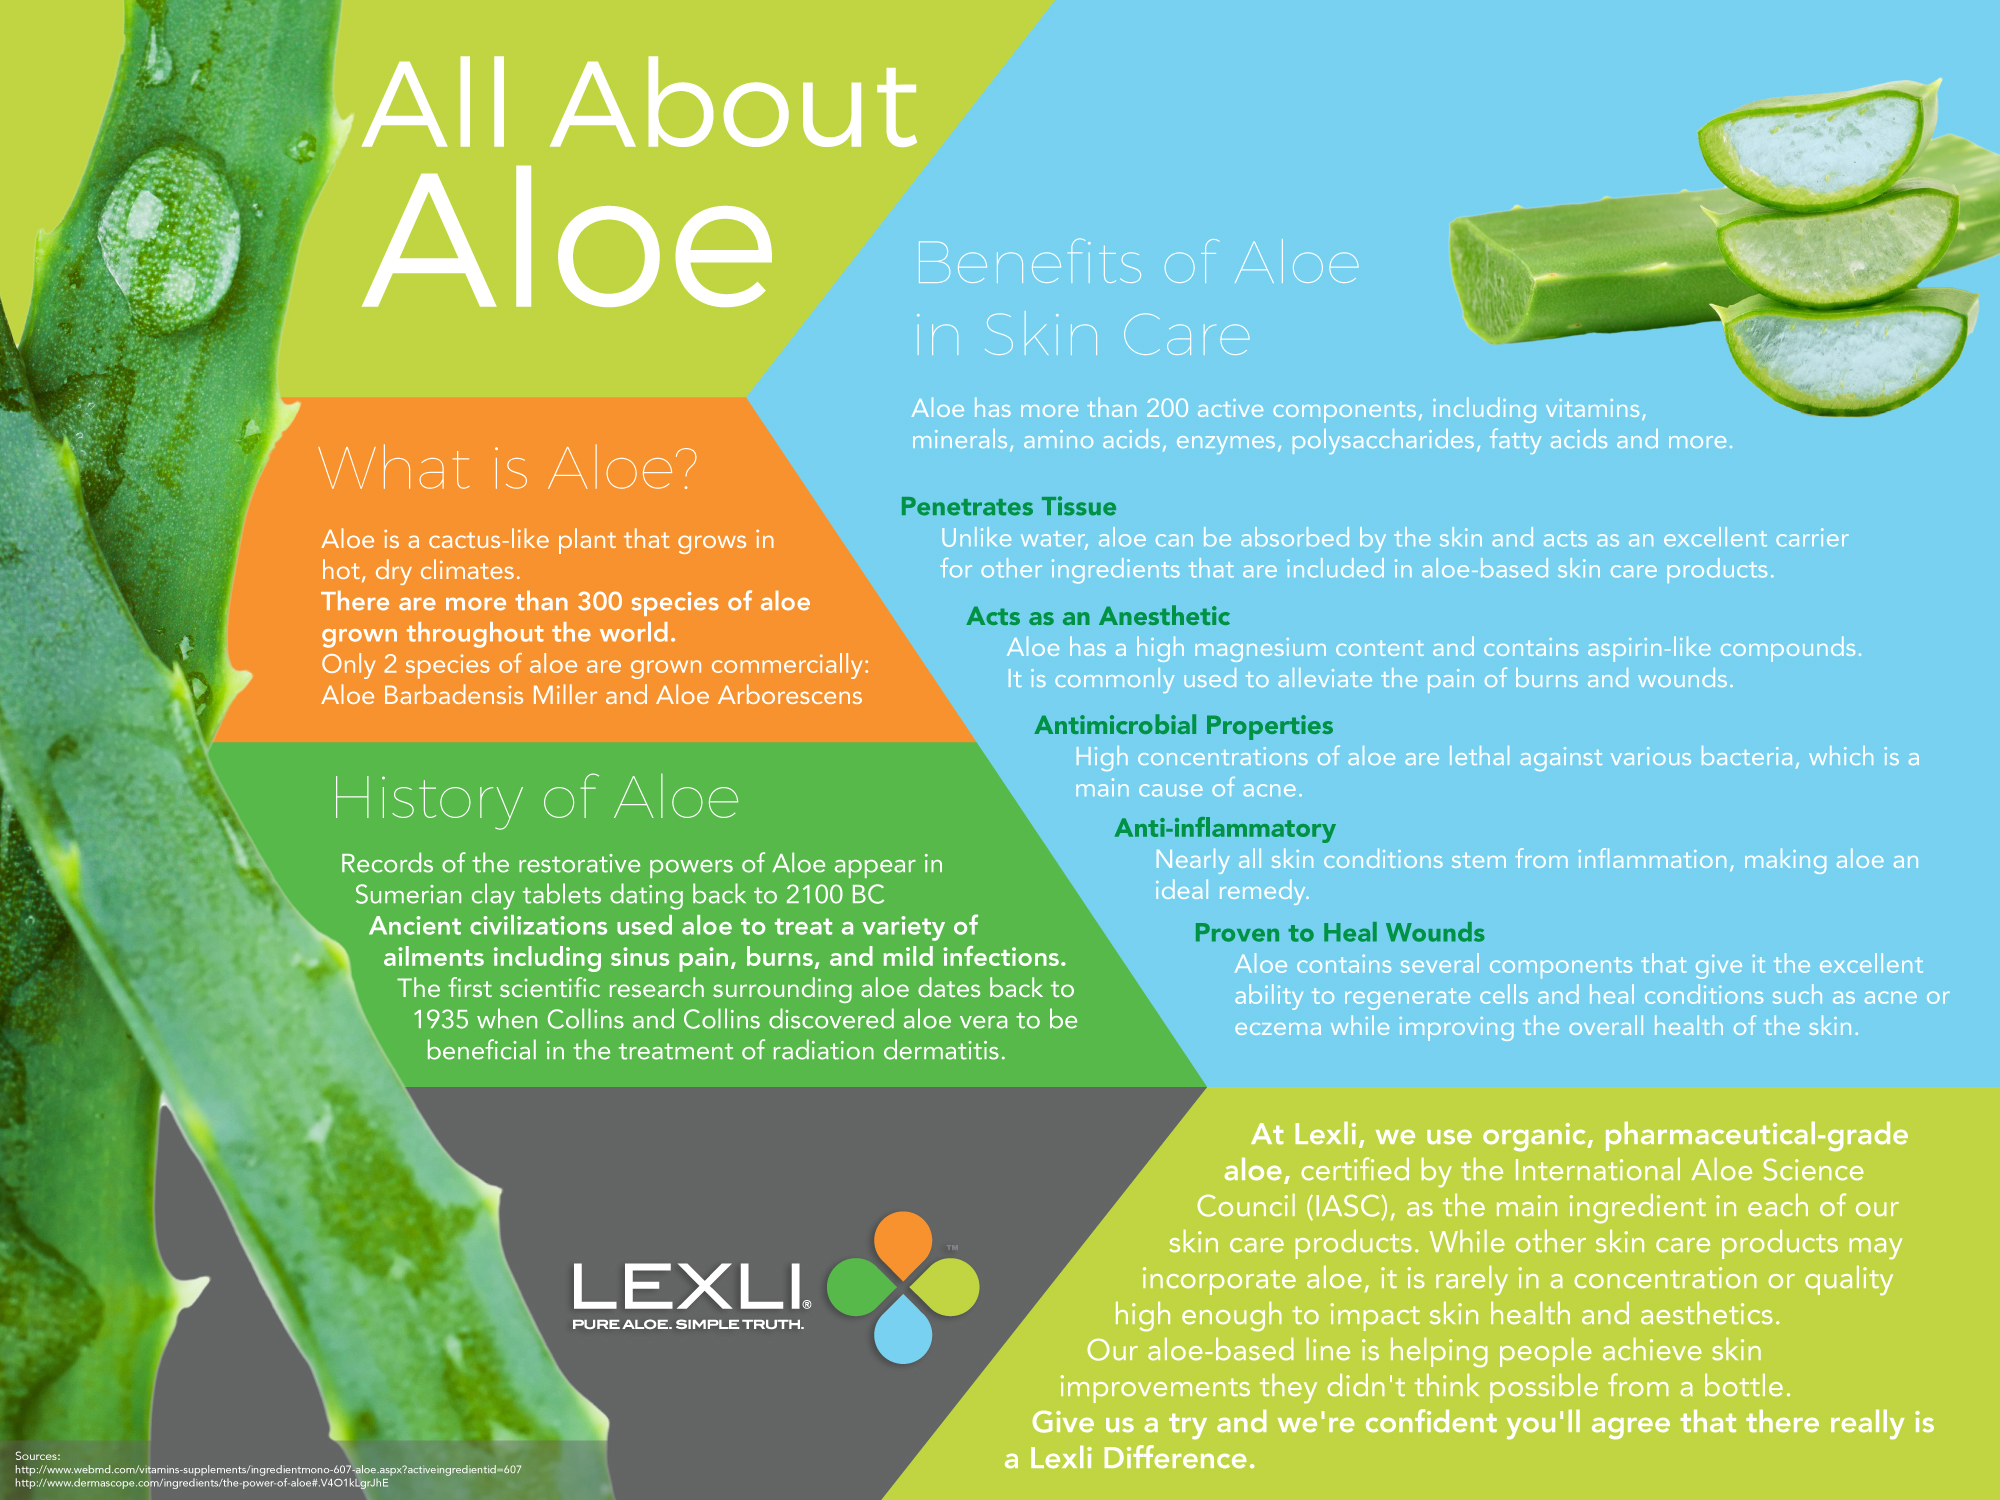 All about aloe from Lexli.com